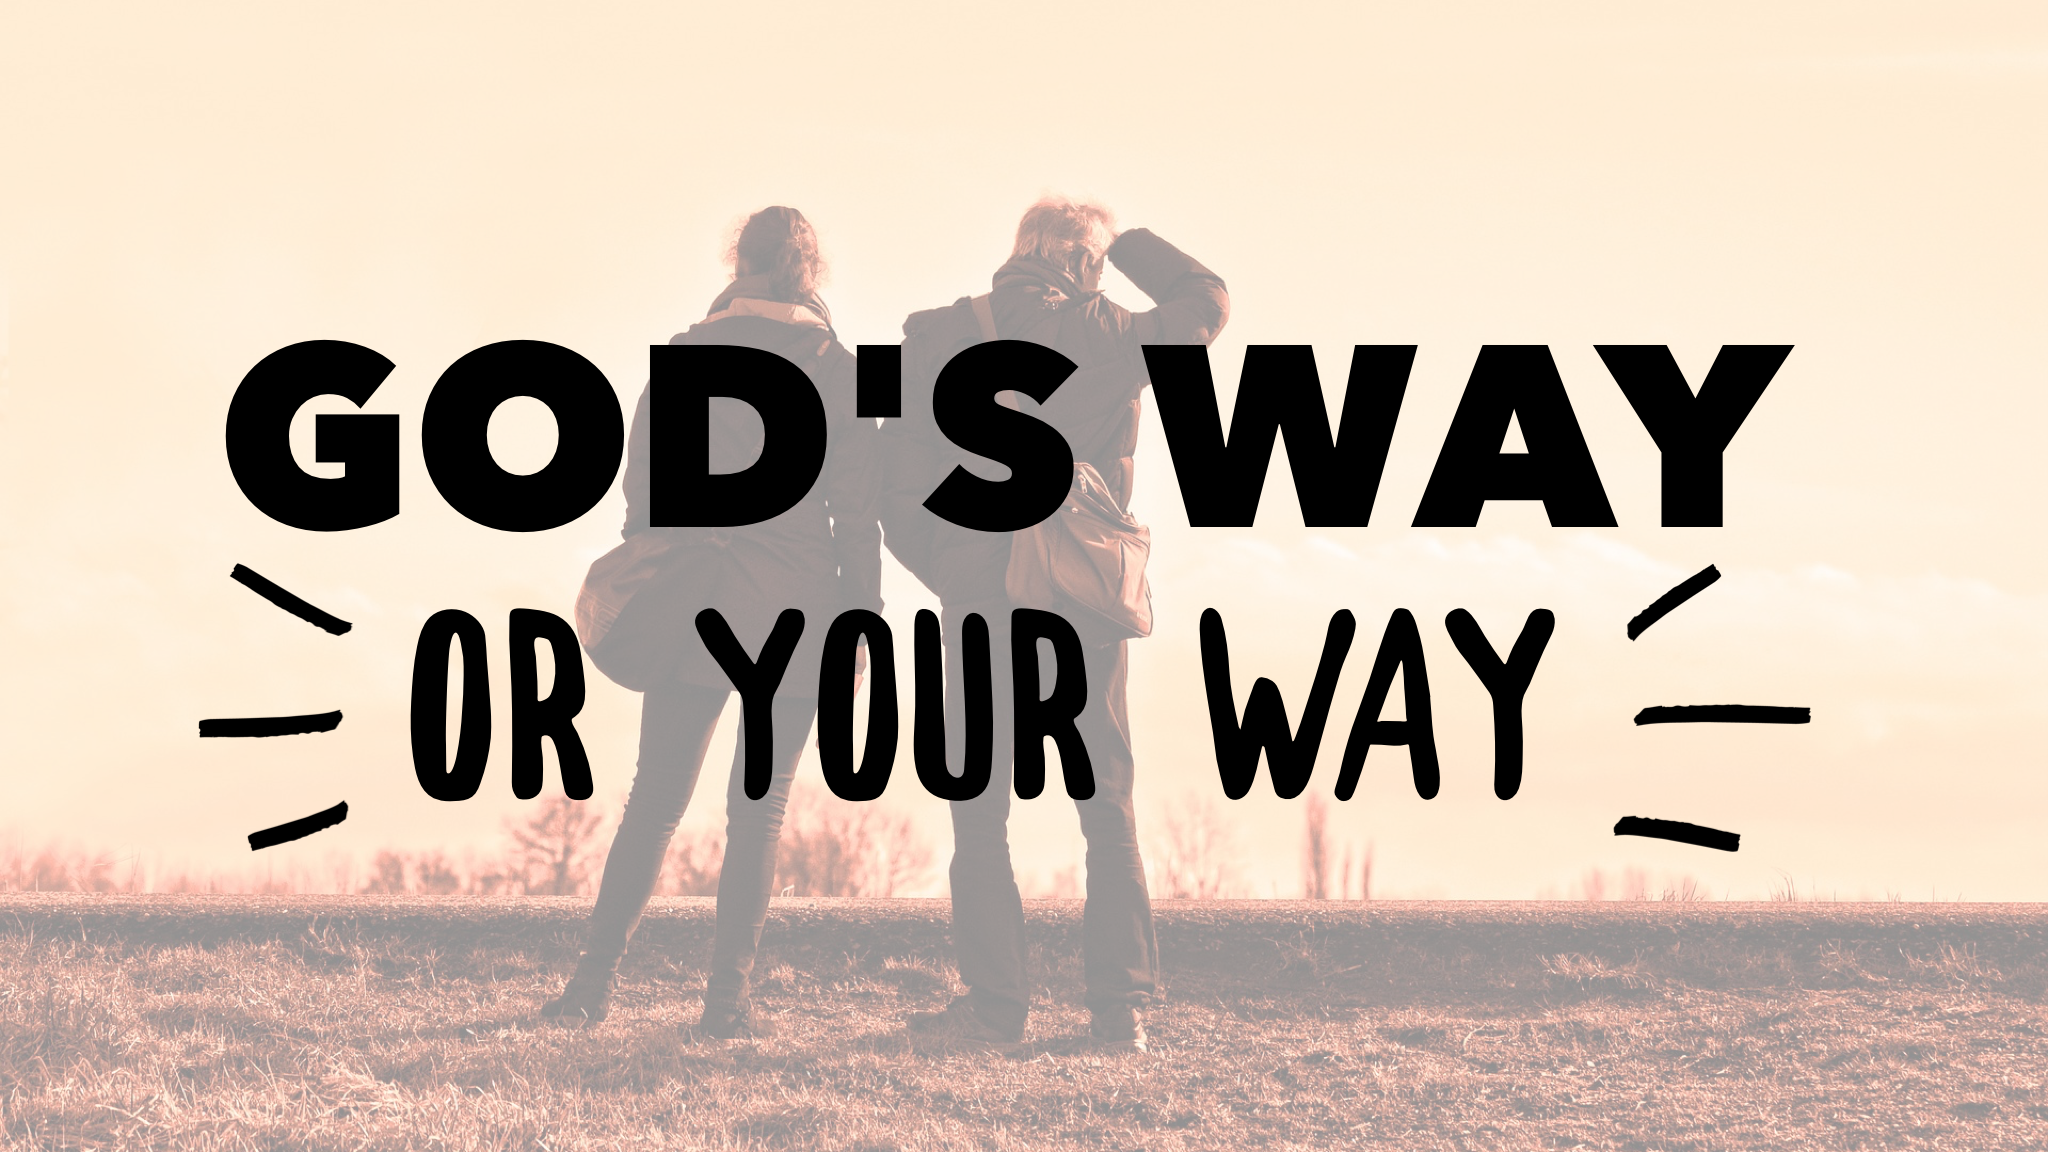 God's Way or Your Way?